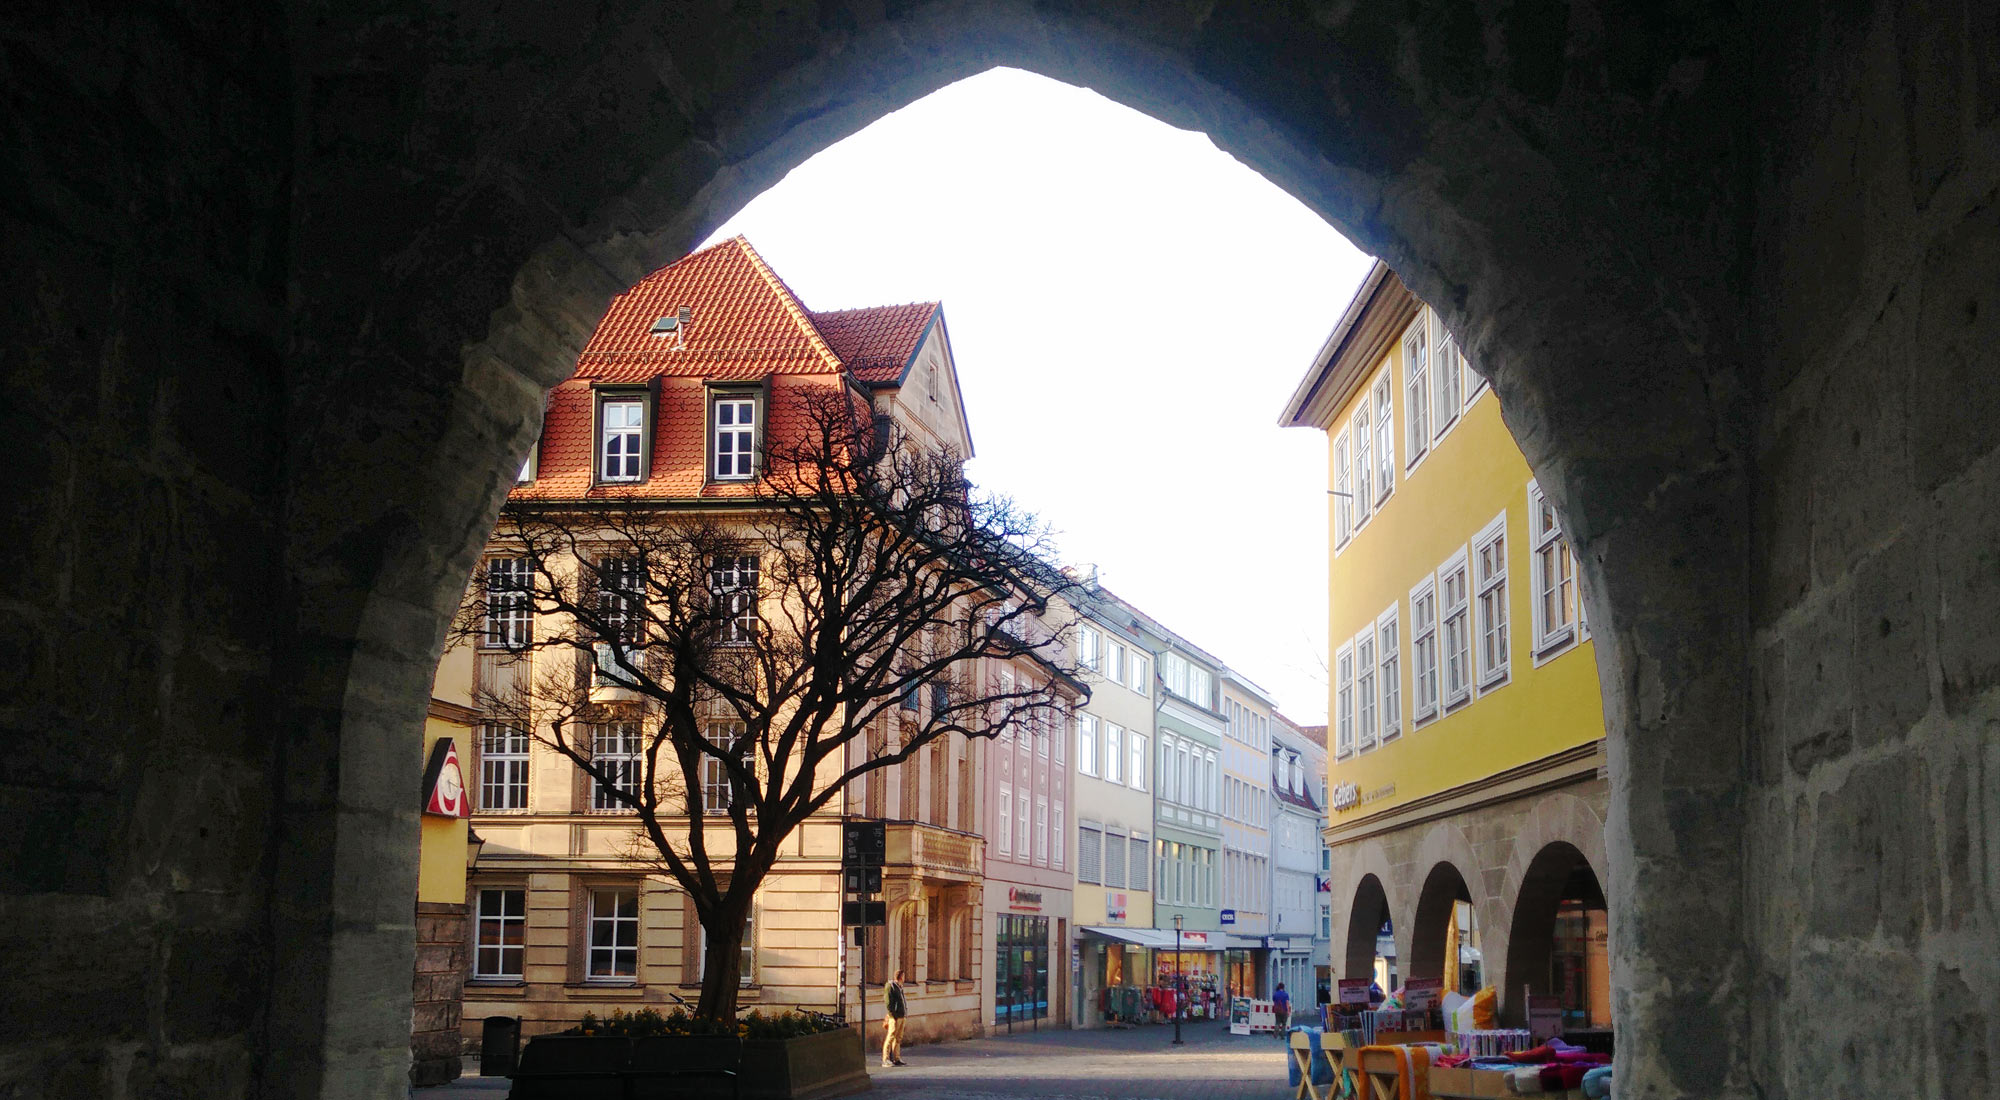 view through the hospital gate Spitaltor in the medieval town wall of Coburg